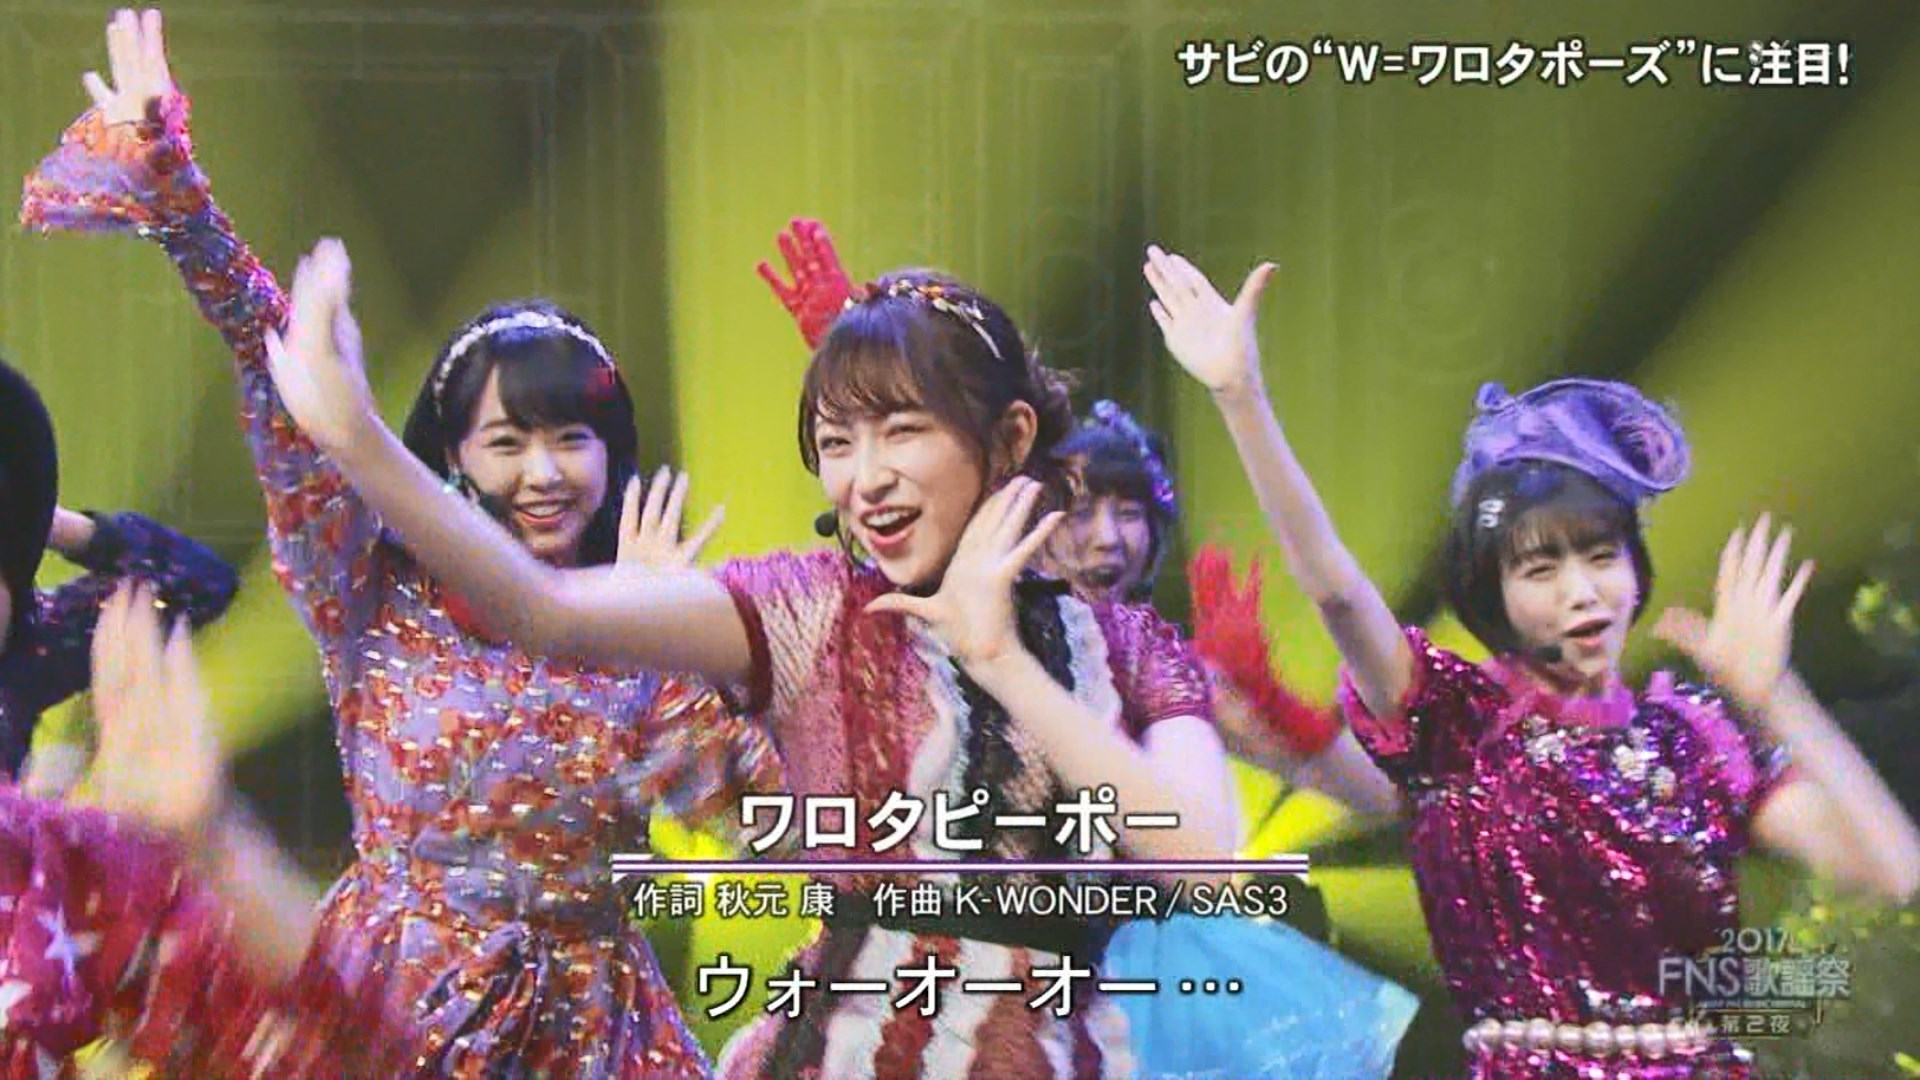 2017FNS歌謡祭第2夜・NMB48ワロタピーポーキャプ-005